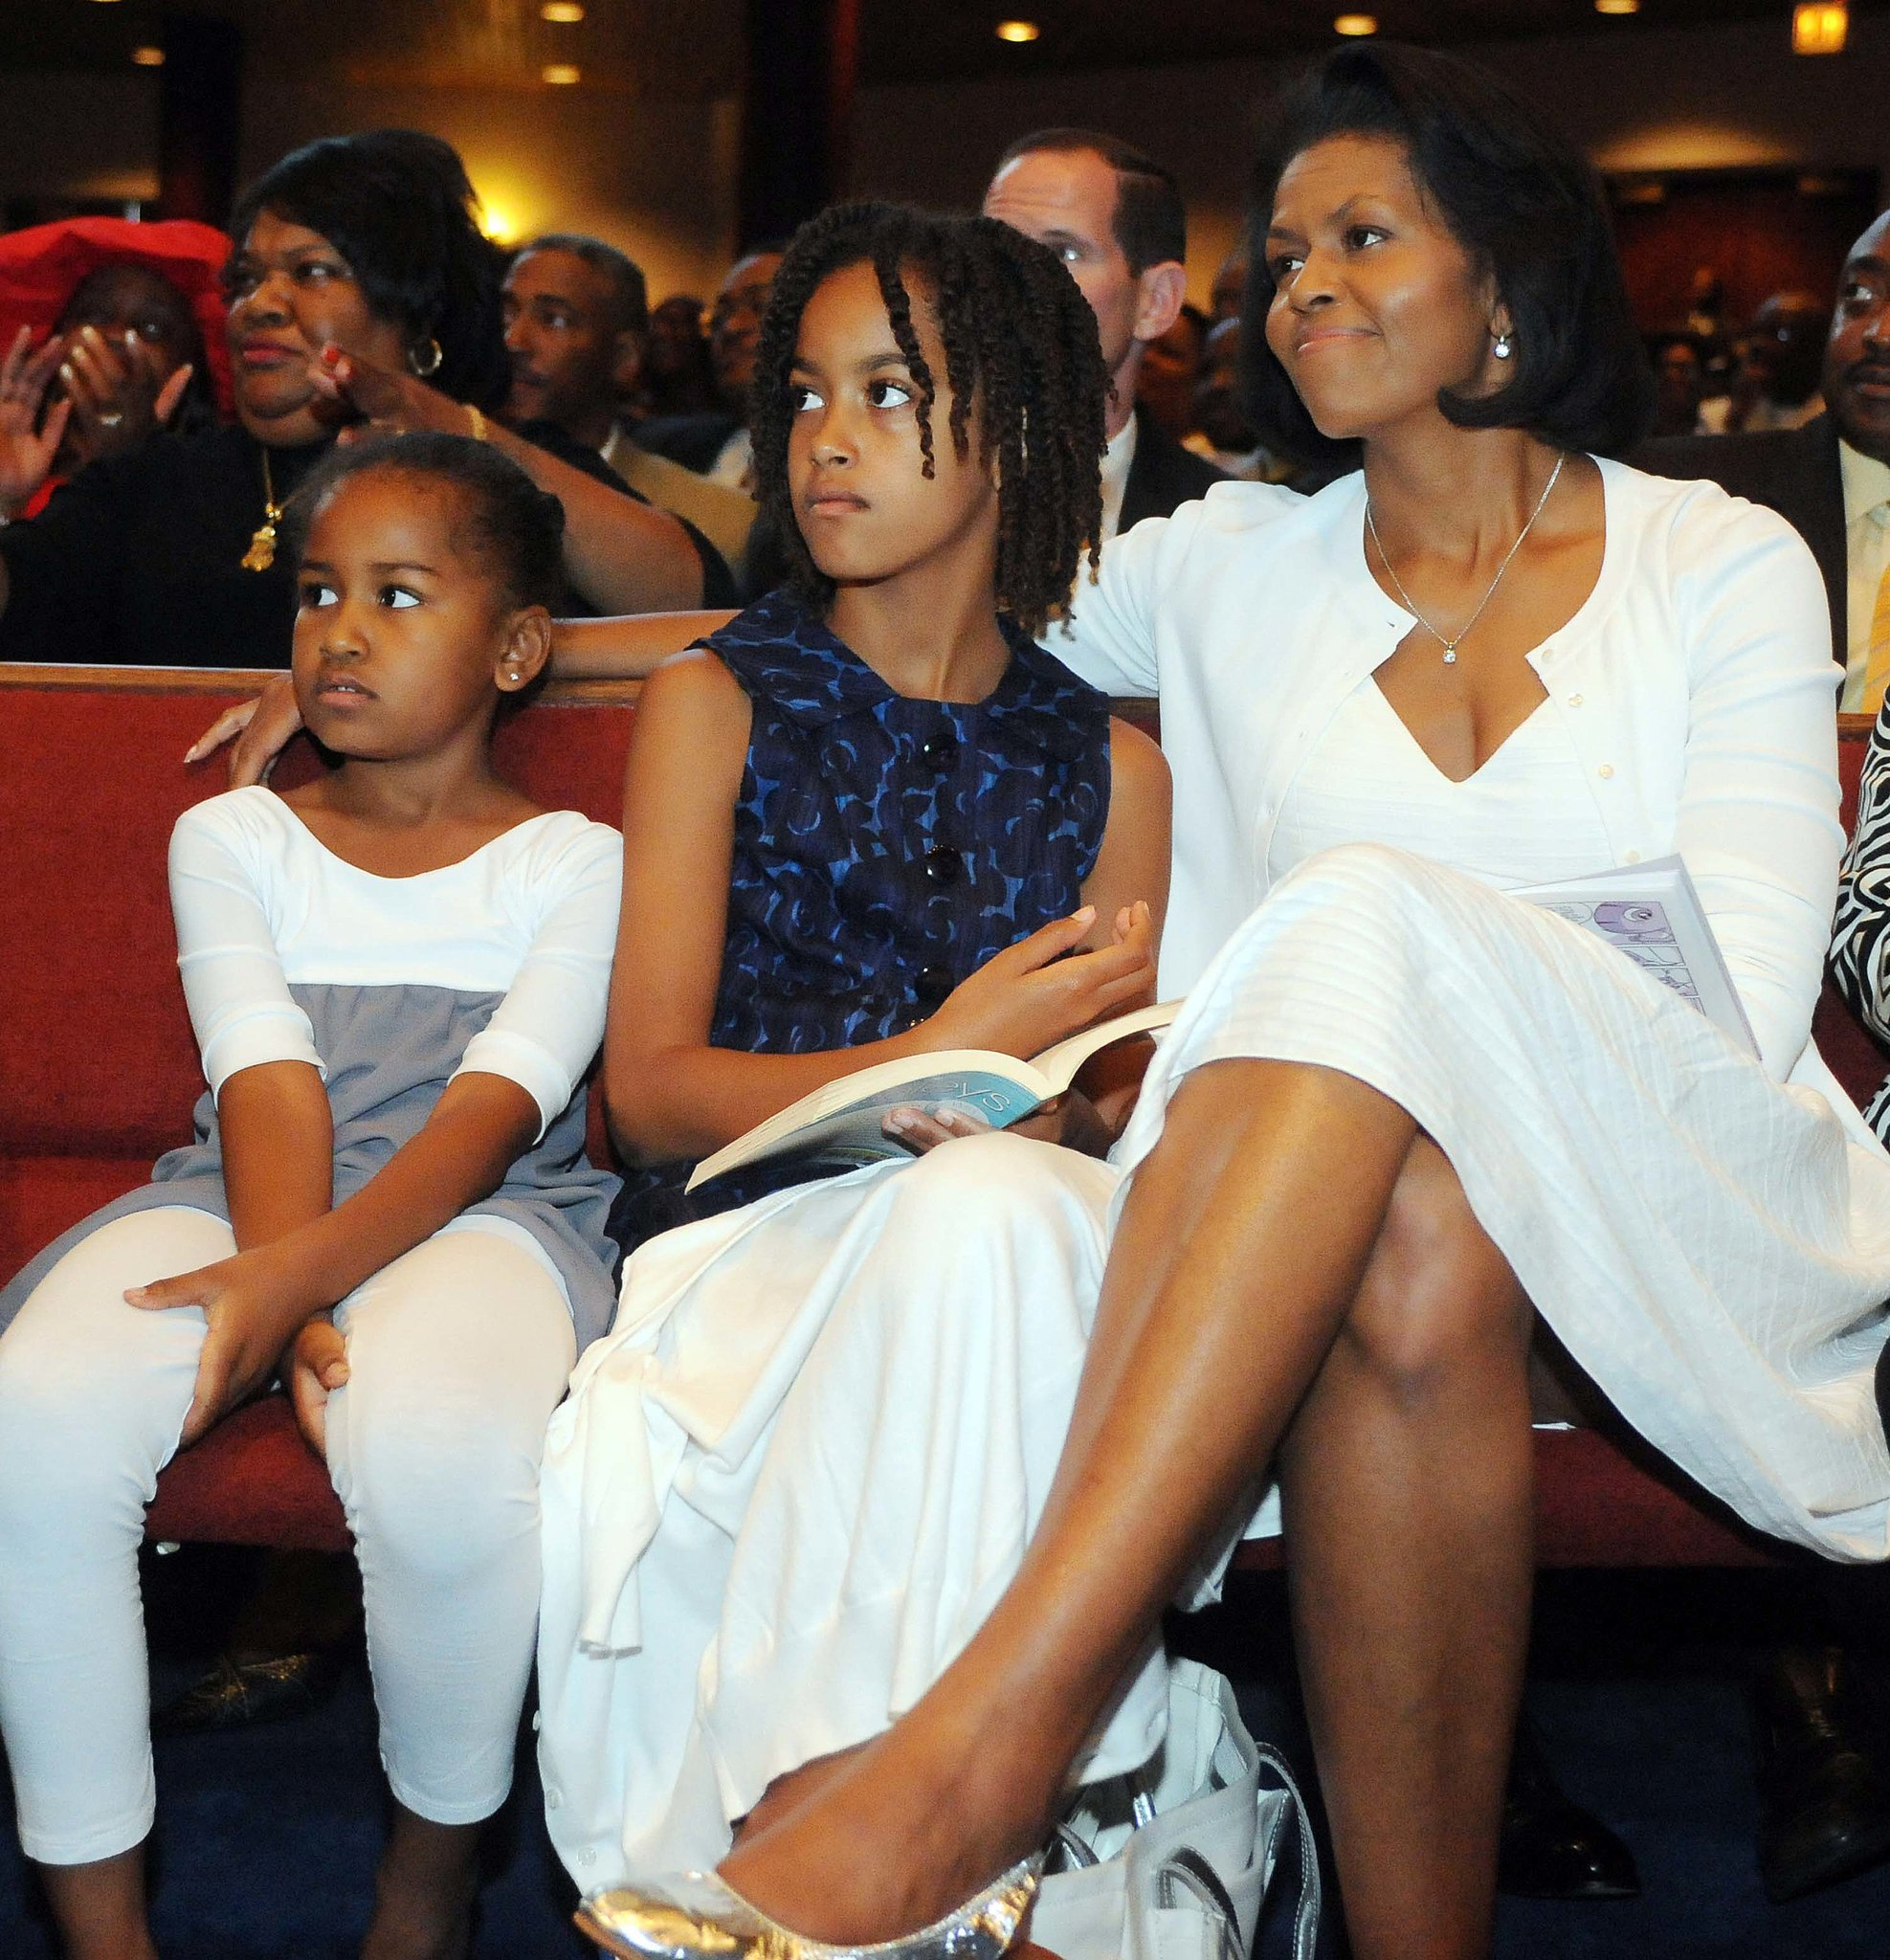 In June 2008, the Obama girls watched as then-candidate Barack gave a speech on Father's Day in Chicago.